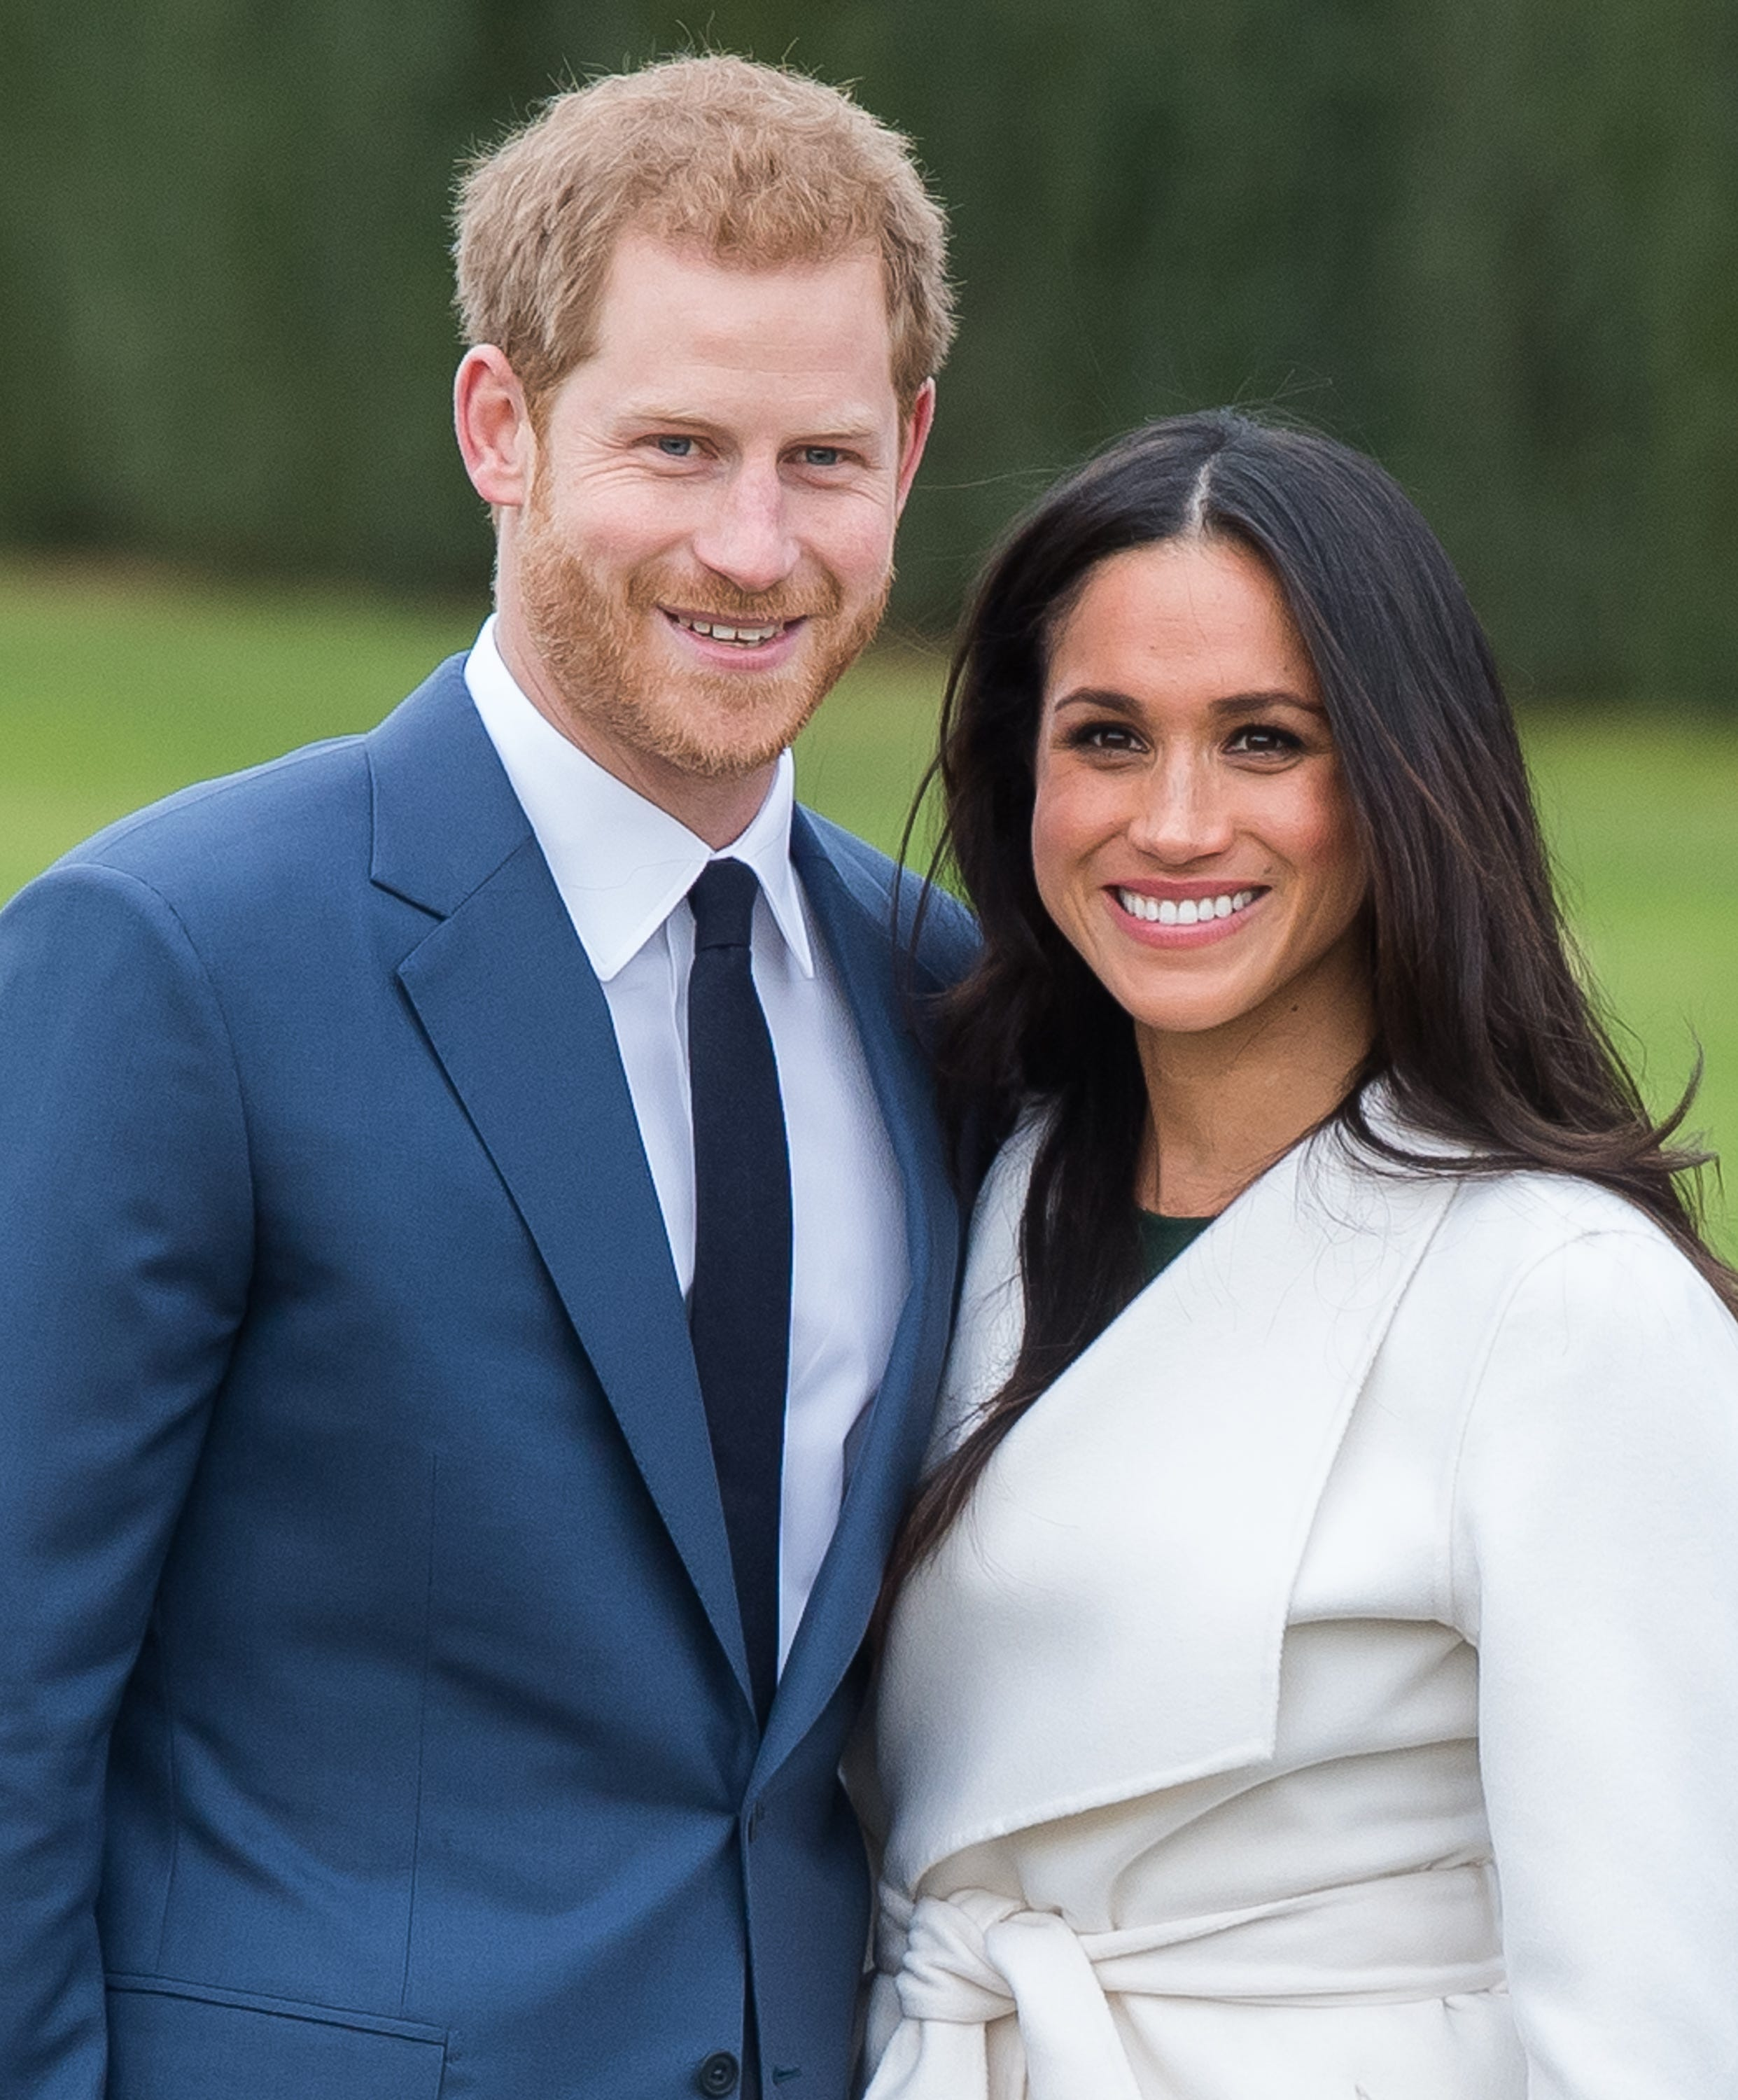 The First Photos Of Meghan Markle & Prince Harry's Baby Boy Are Finally Here